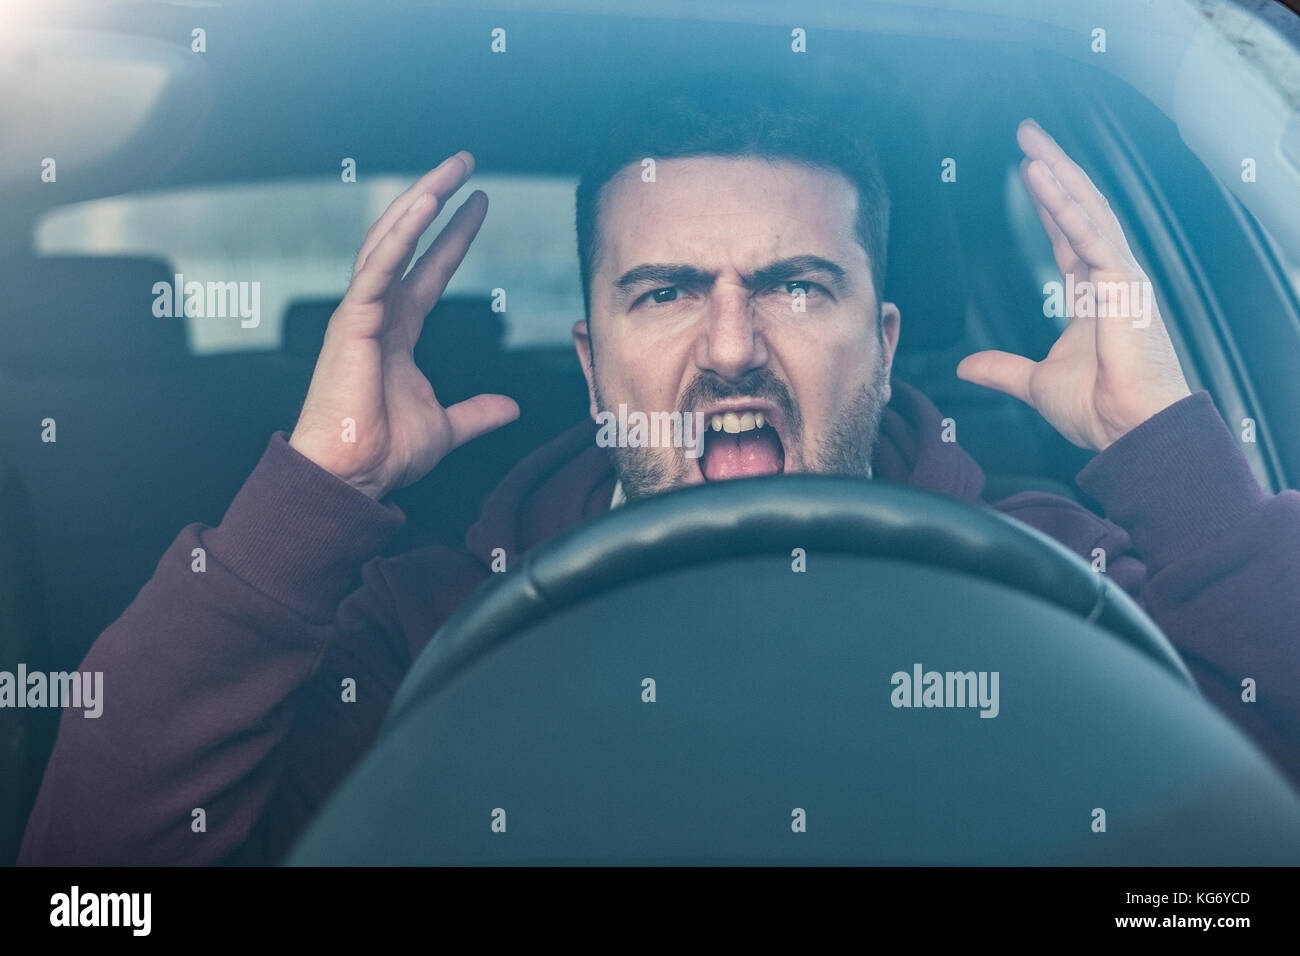 Rude man driving his car and arguing a lot - Stock Image